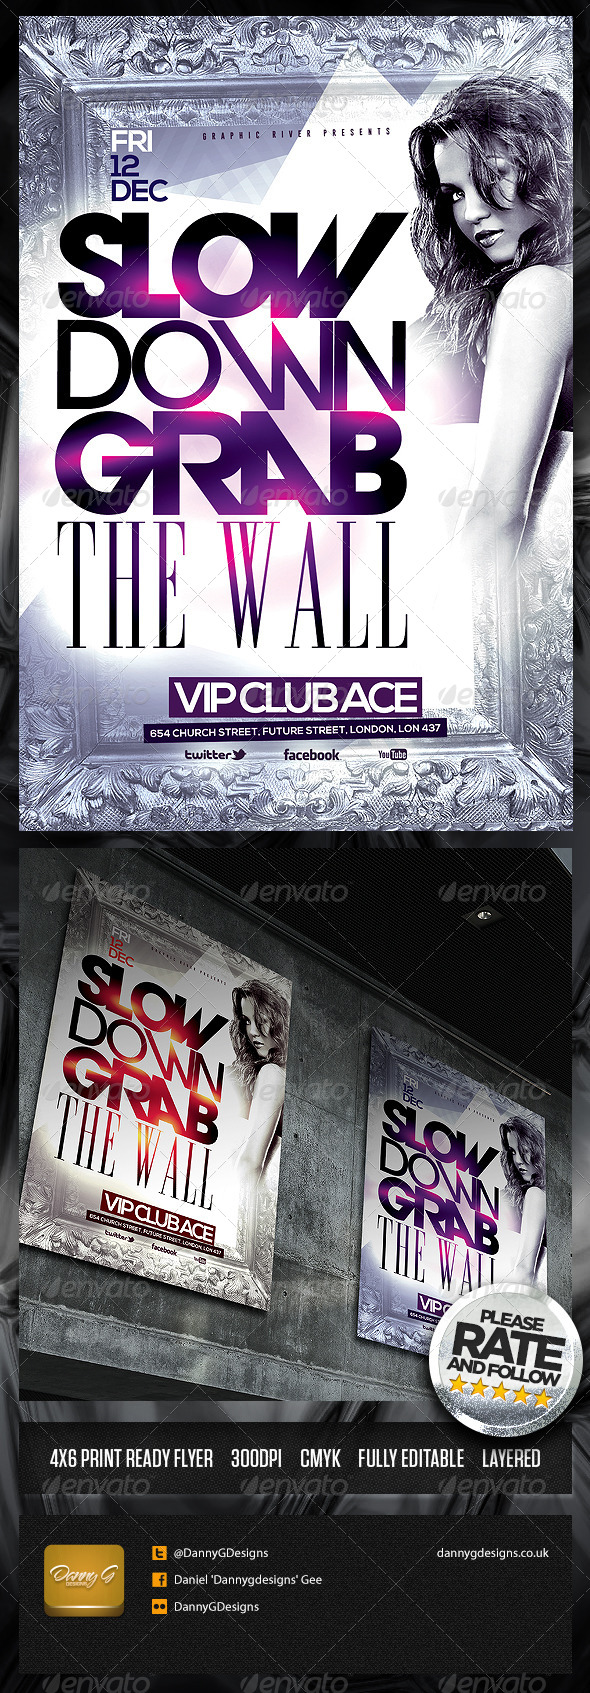 Slow Down Grab The Wall Flyer Template - Clubs & Parties Events